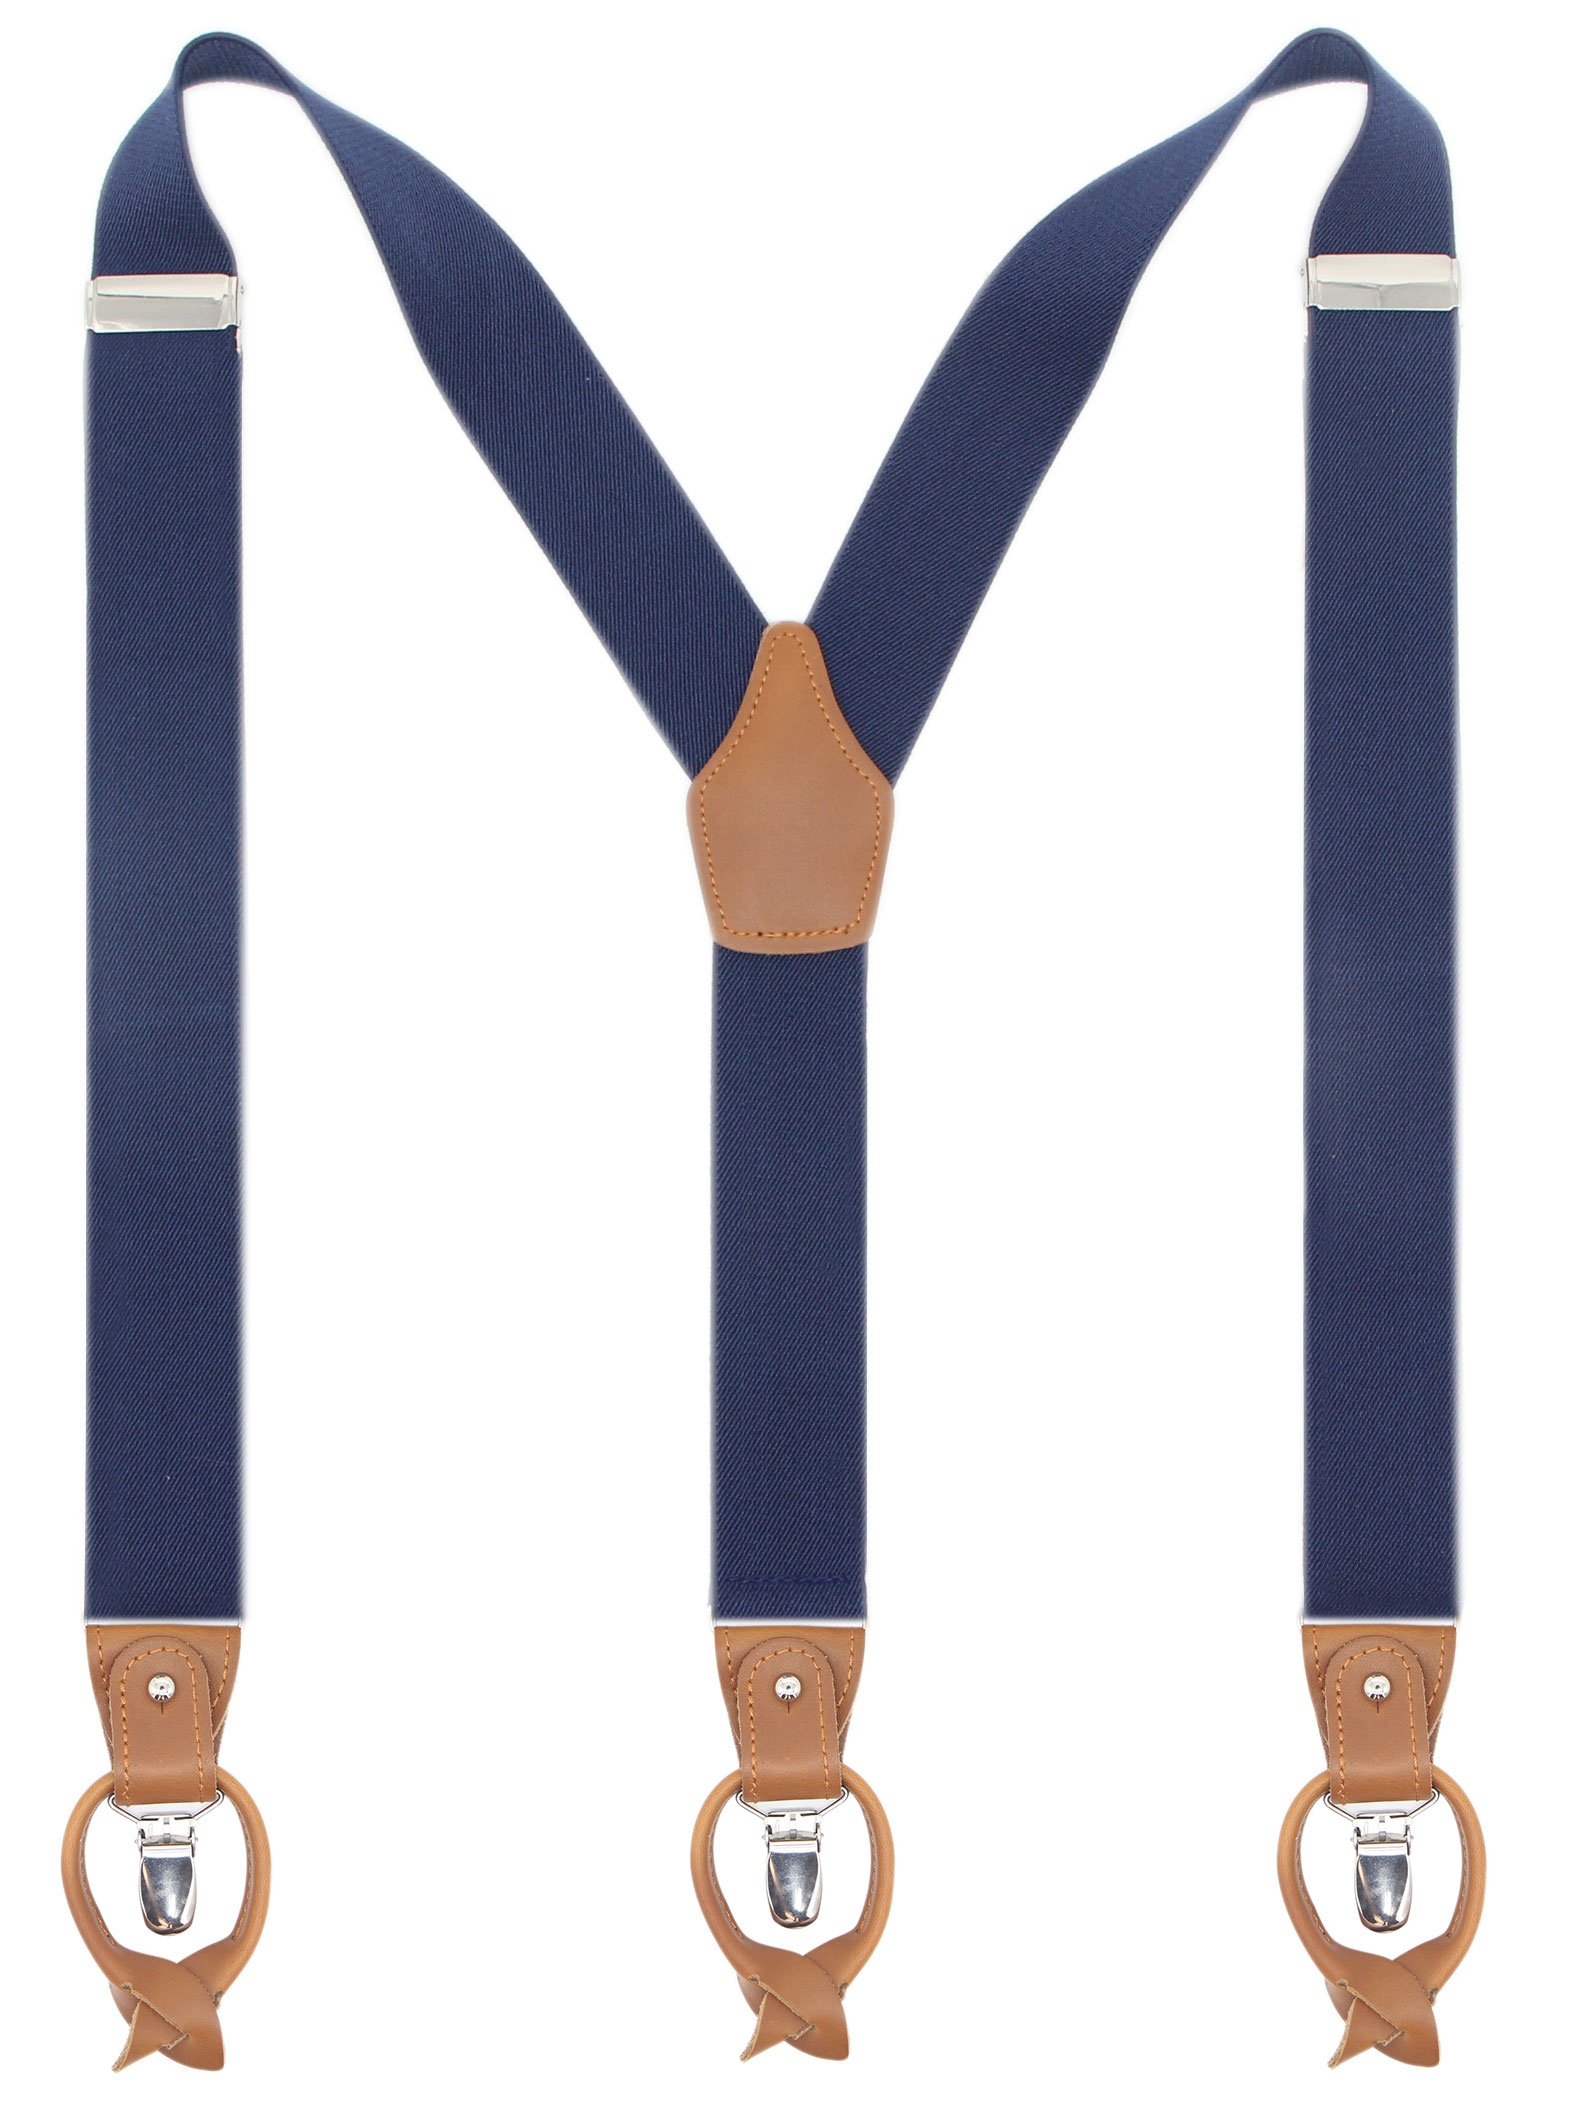 Leather Clip And Button Suspenders For Men, Y-Back Style For Formal Outfits (Navy)